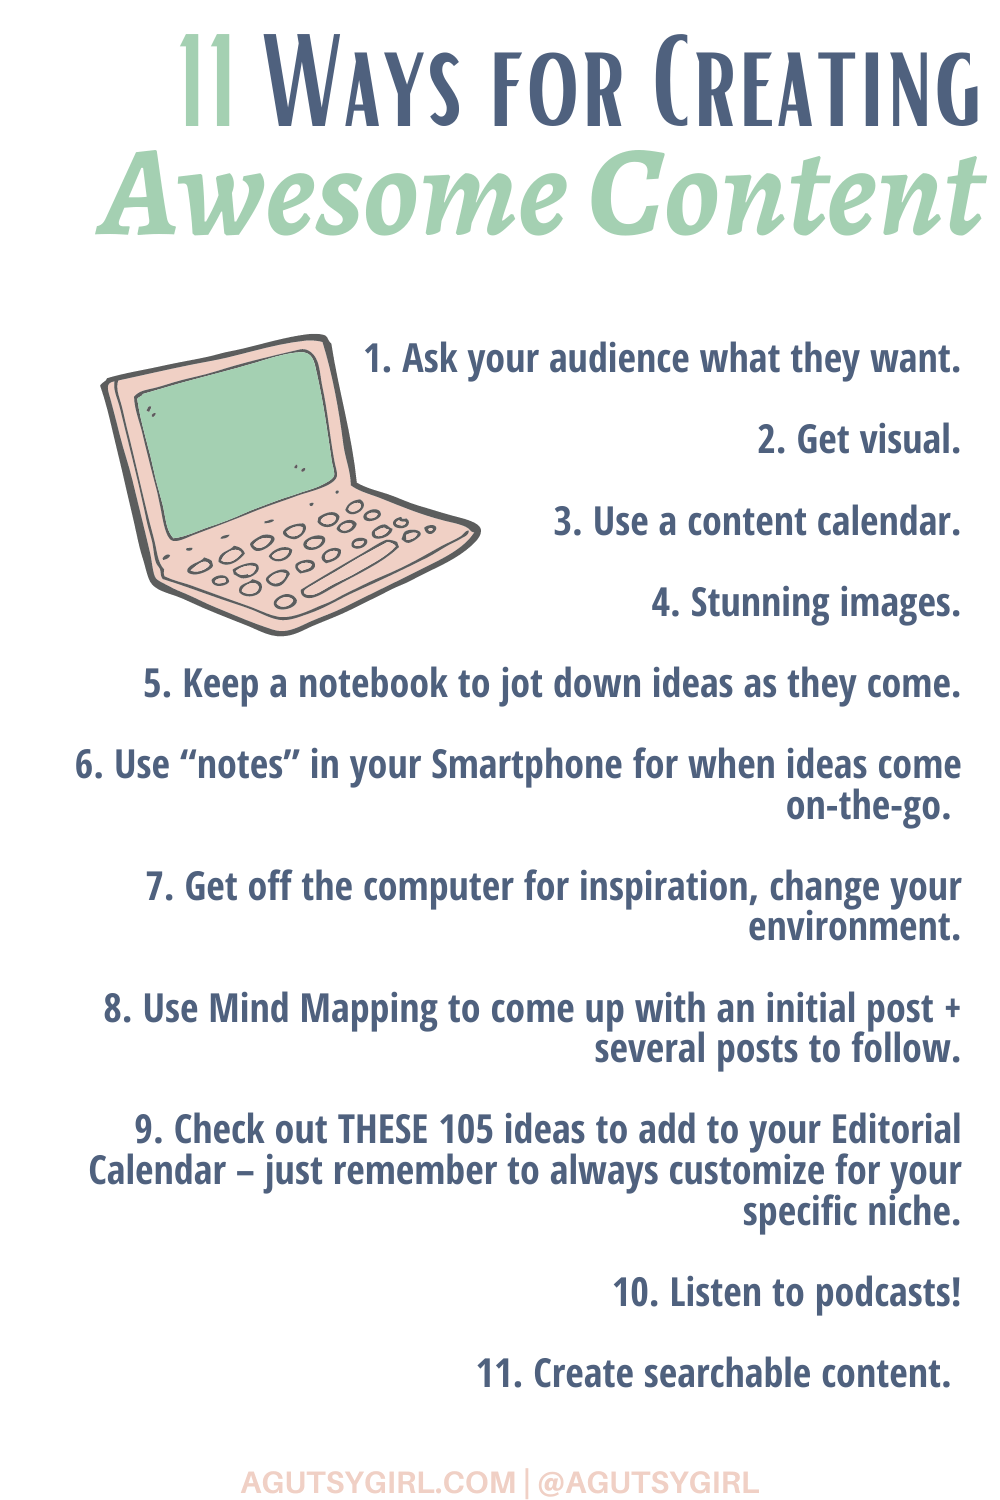 11 Ways for Creating Awesome Content agutsygirl.com #blogging #onlinebusiness #iin